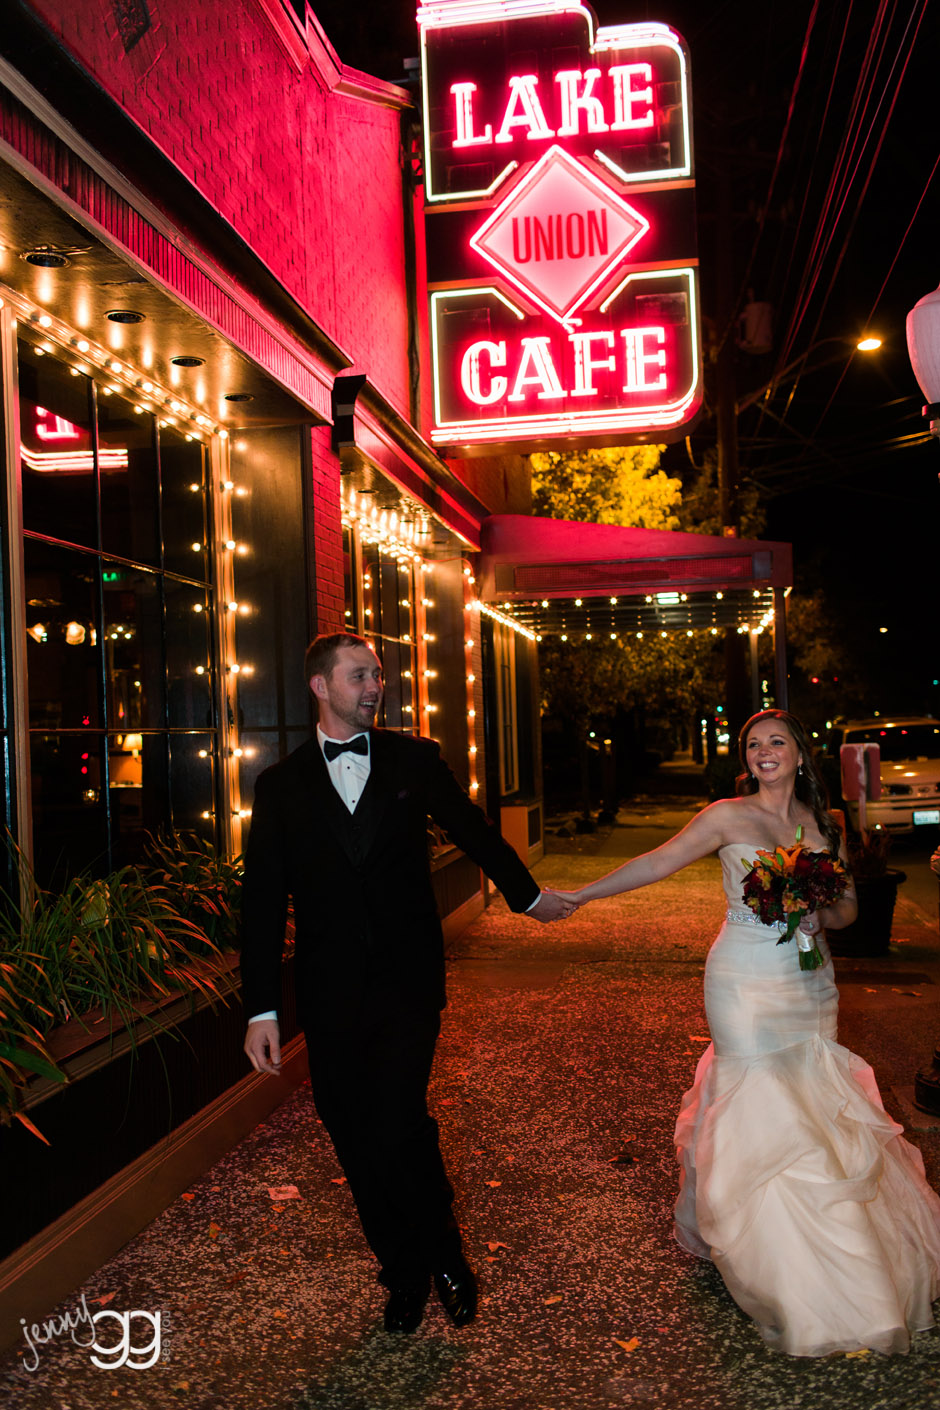 lake union cafe wedding in seattle by jenny gg